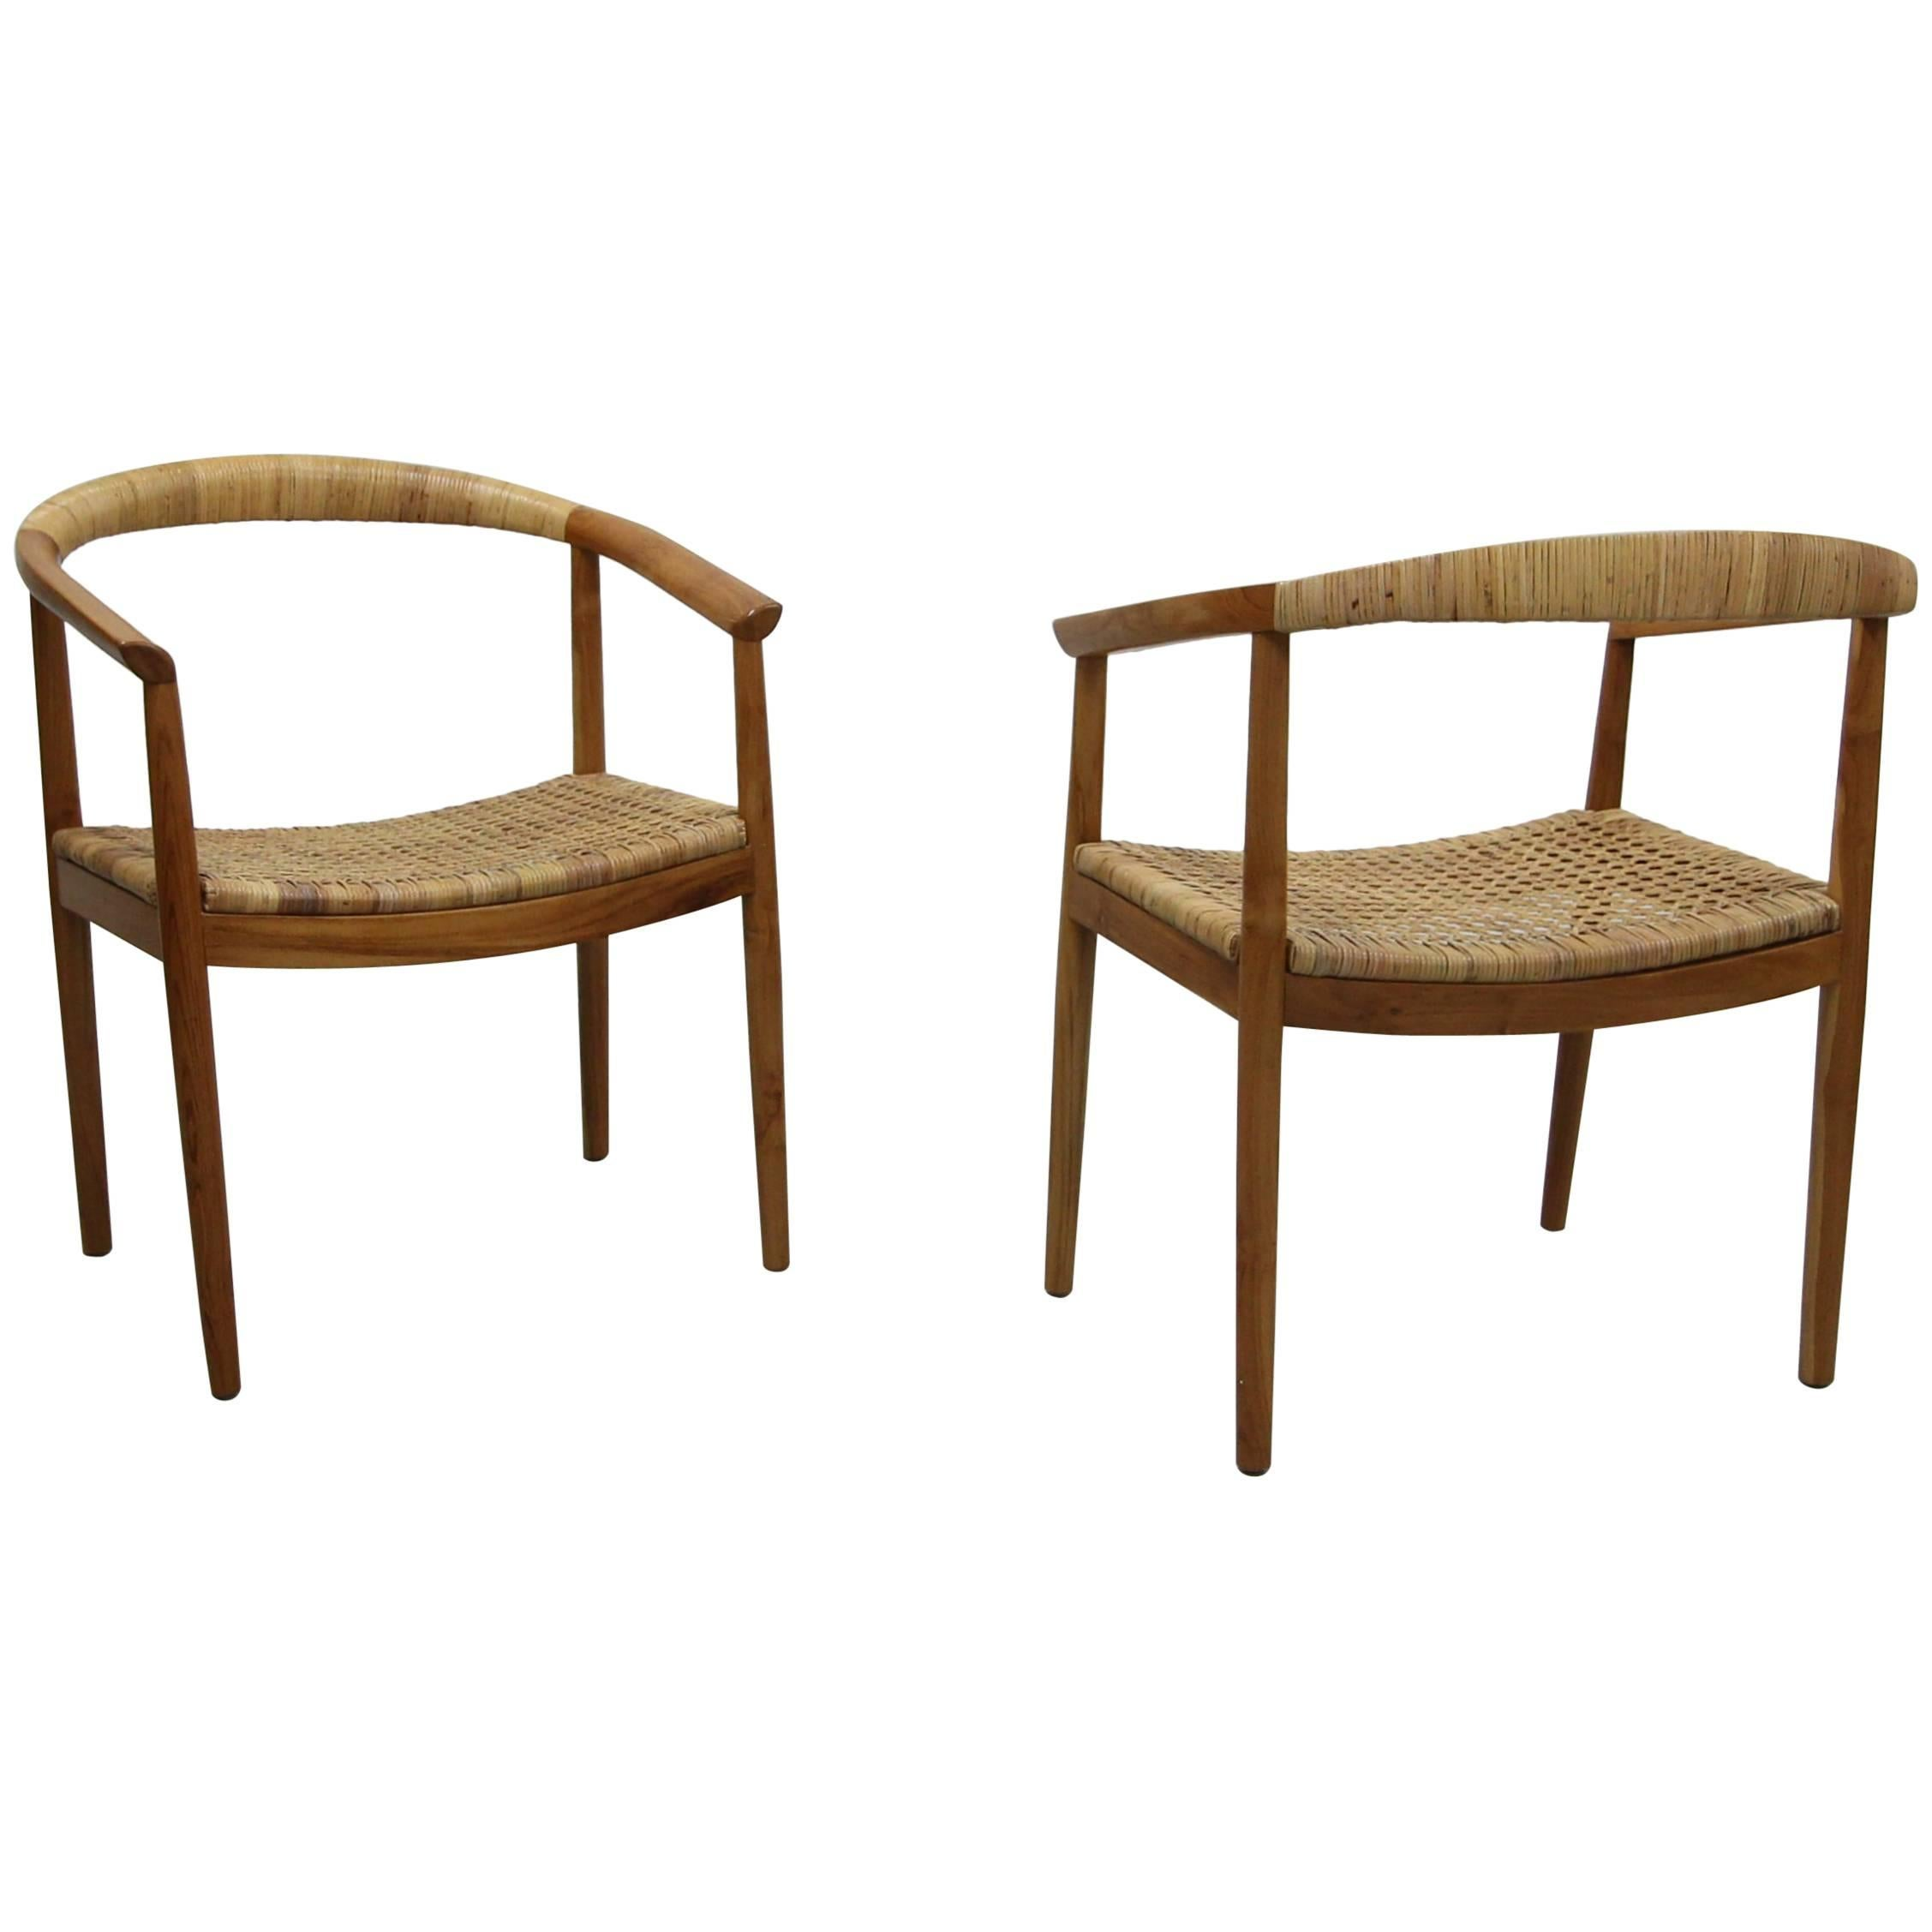 Beautiful Vintage Pair Of Oversized Danish Style Teak And Cane Round Back Side Chairs